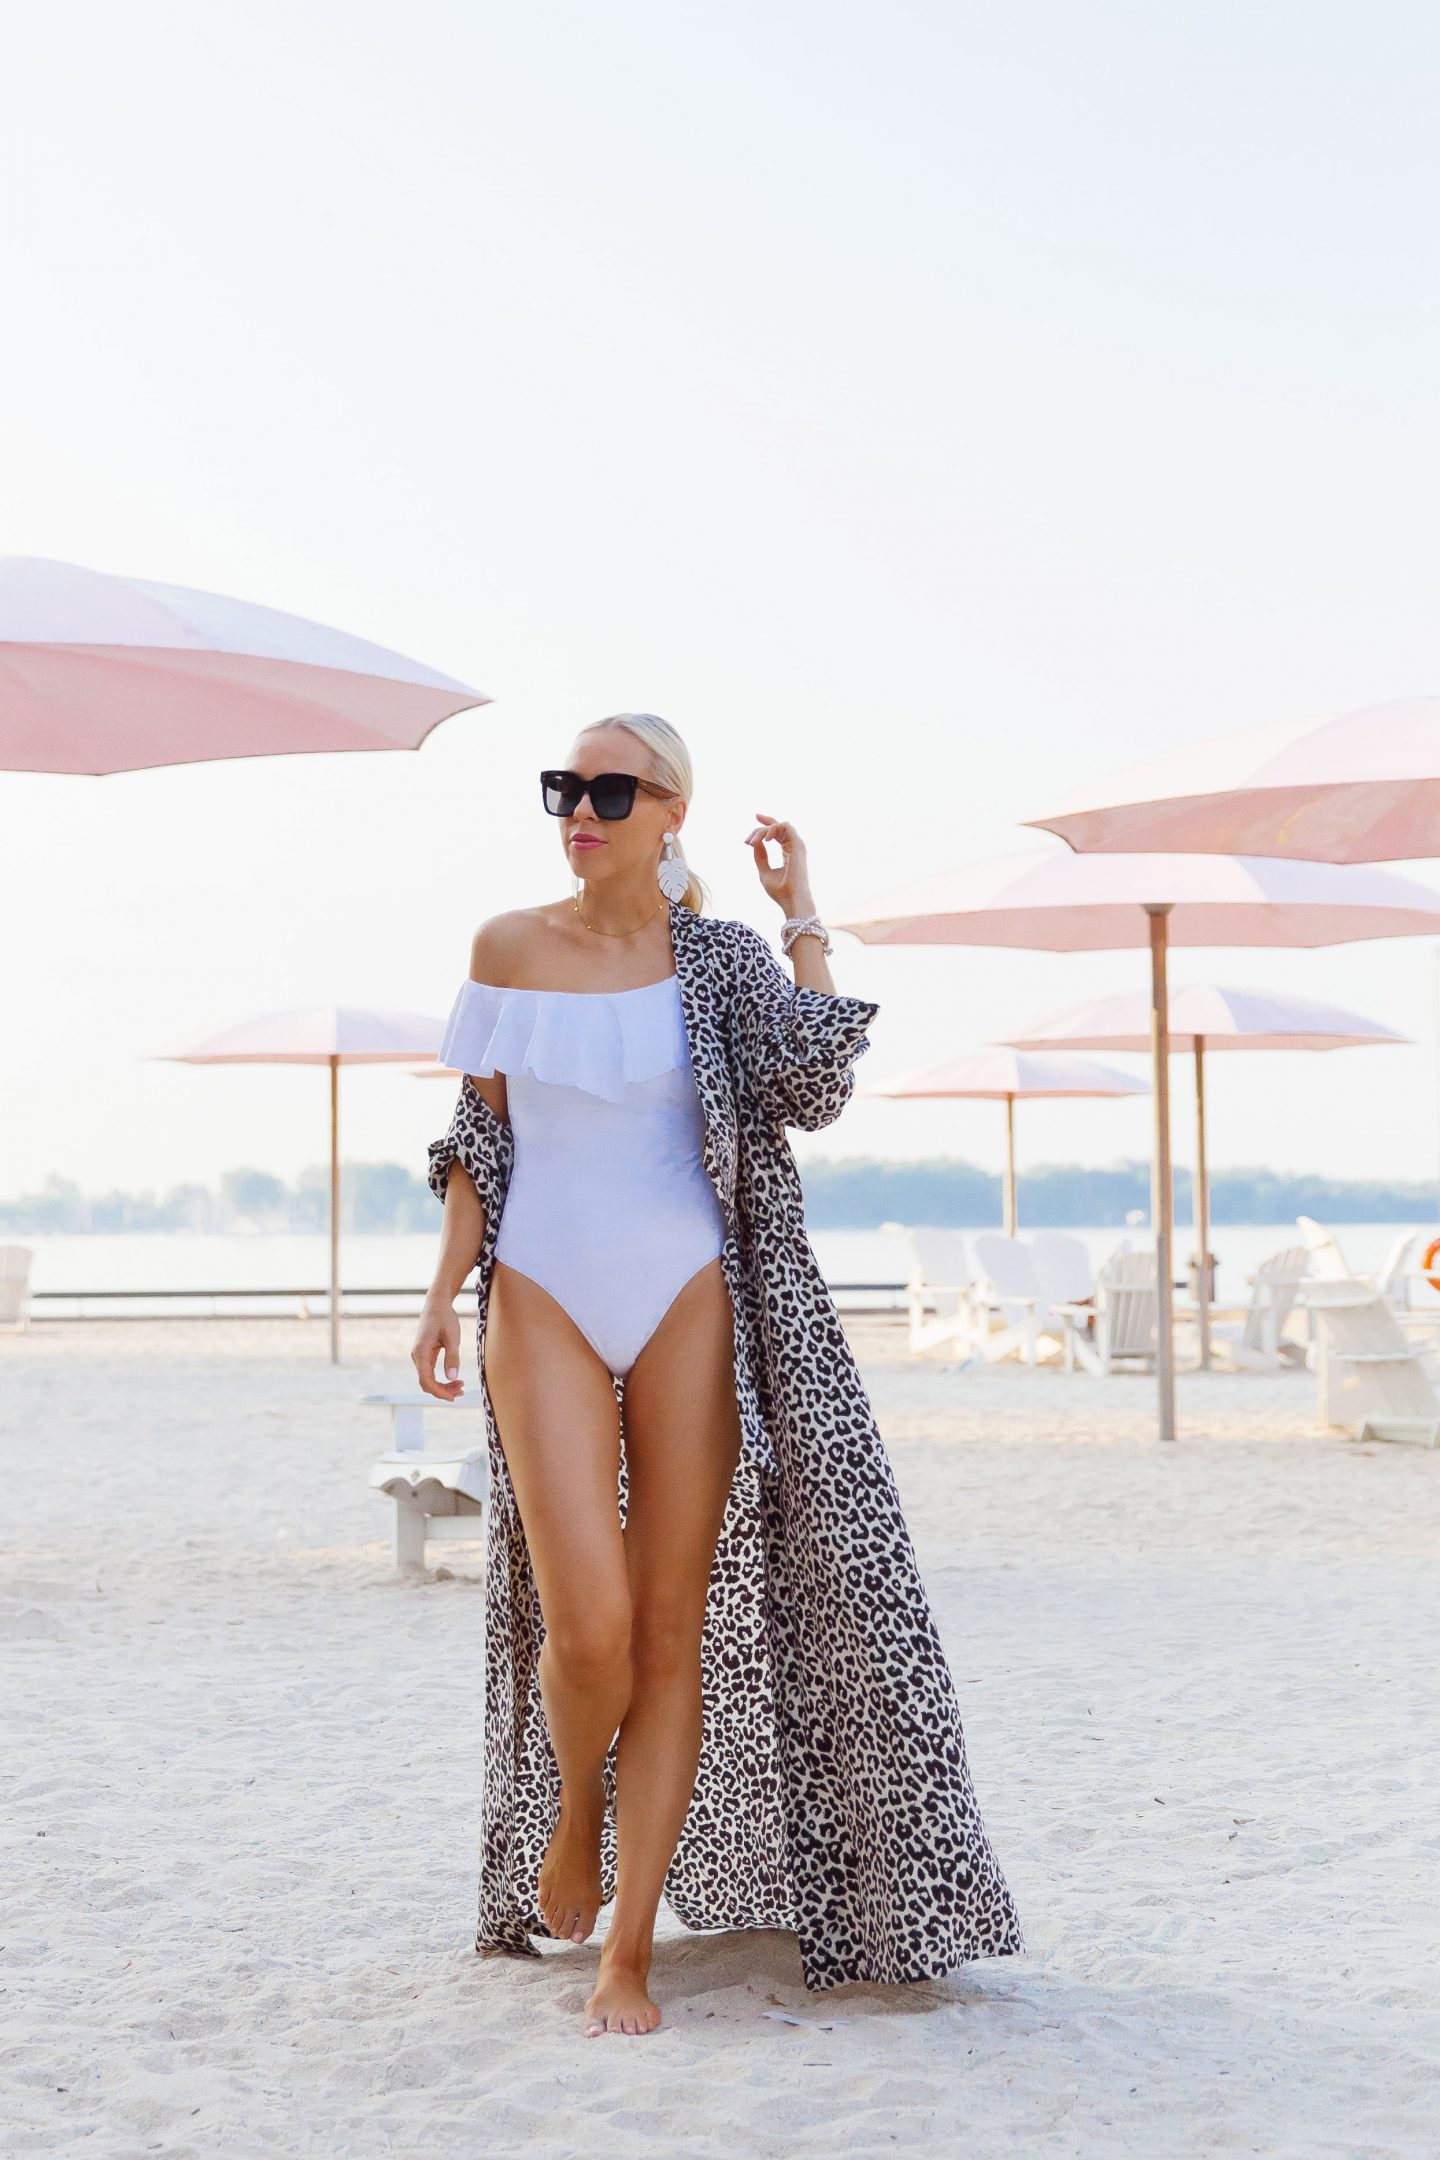 Sugar Beach Toronto featured by top US life and style blog, Lombard and Fifth: image of a woman wearing a Something Navy swimsuit and leopard robe on Sugar Beach Toronto